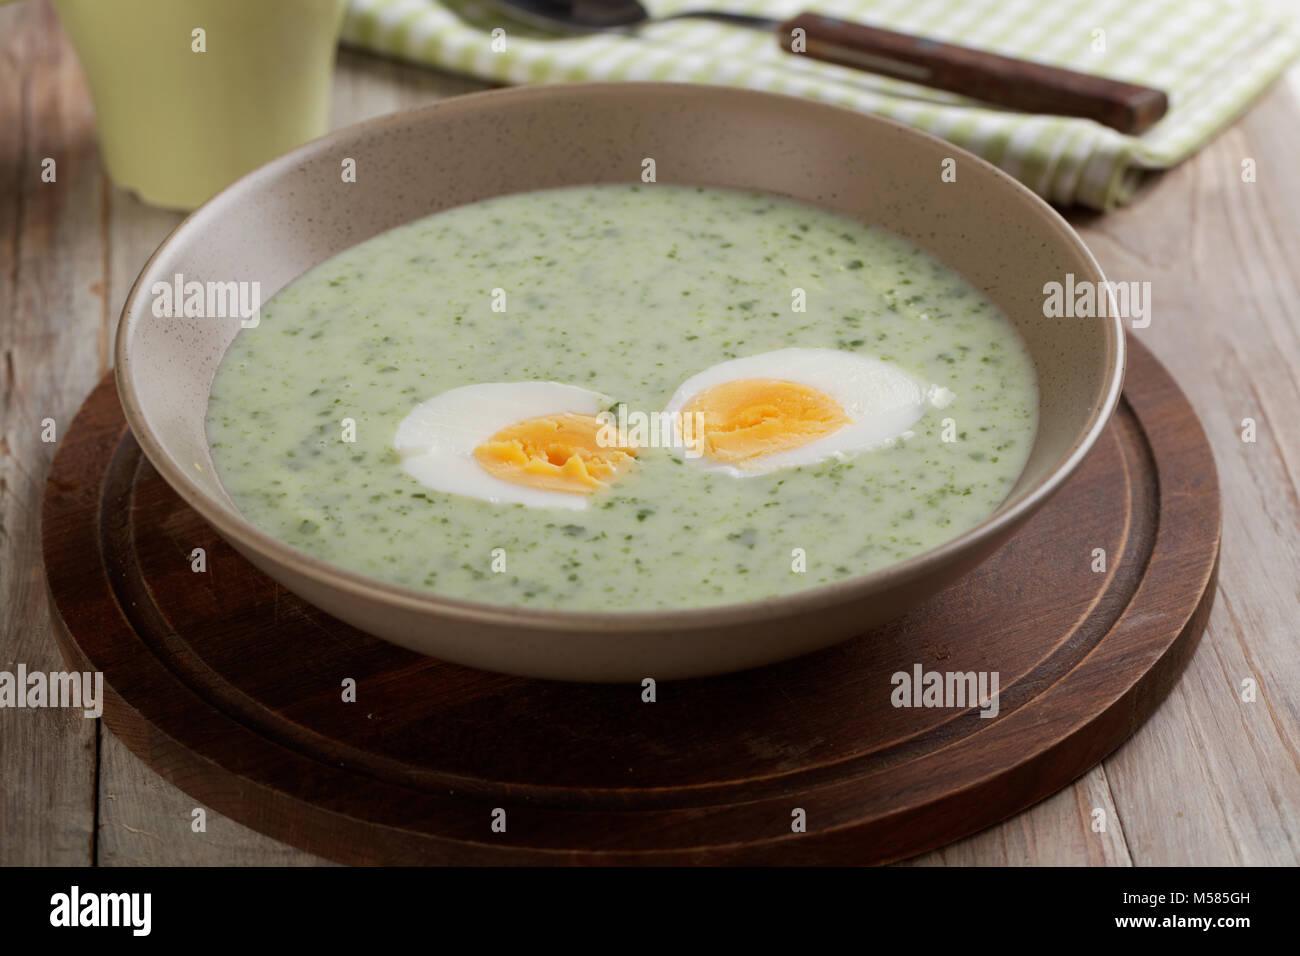 Spinach cream soup with boiled egg - Stock Image